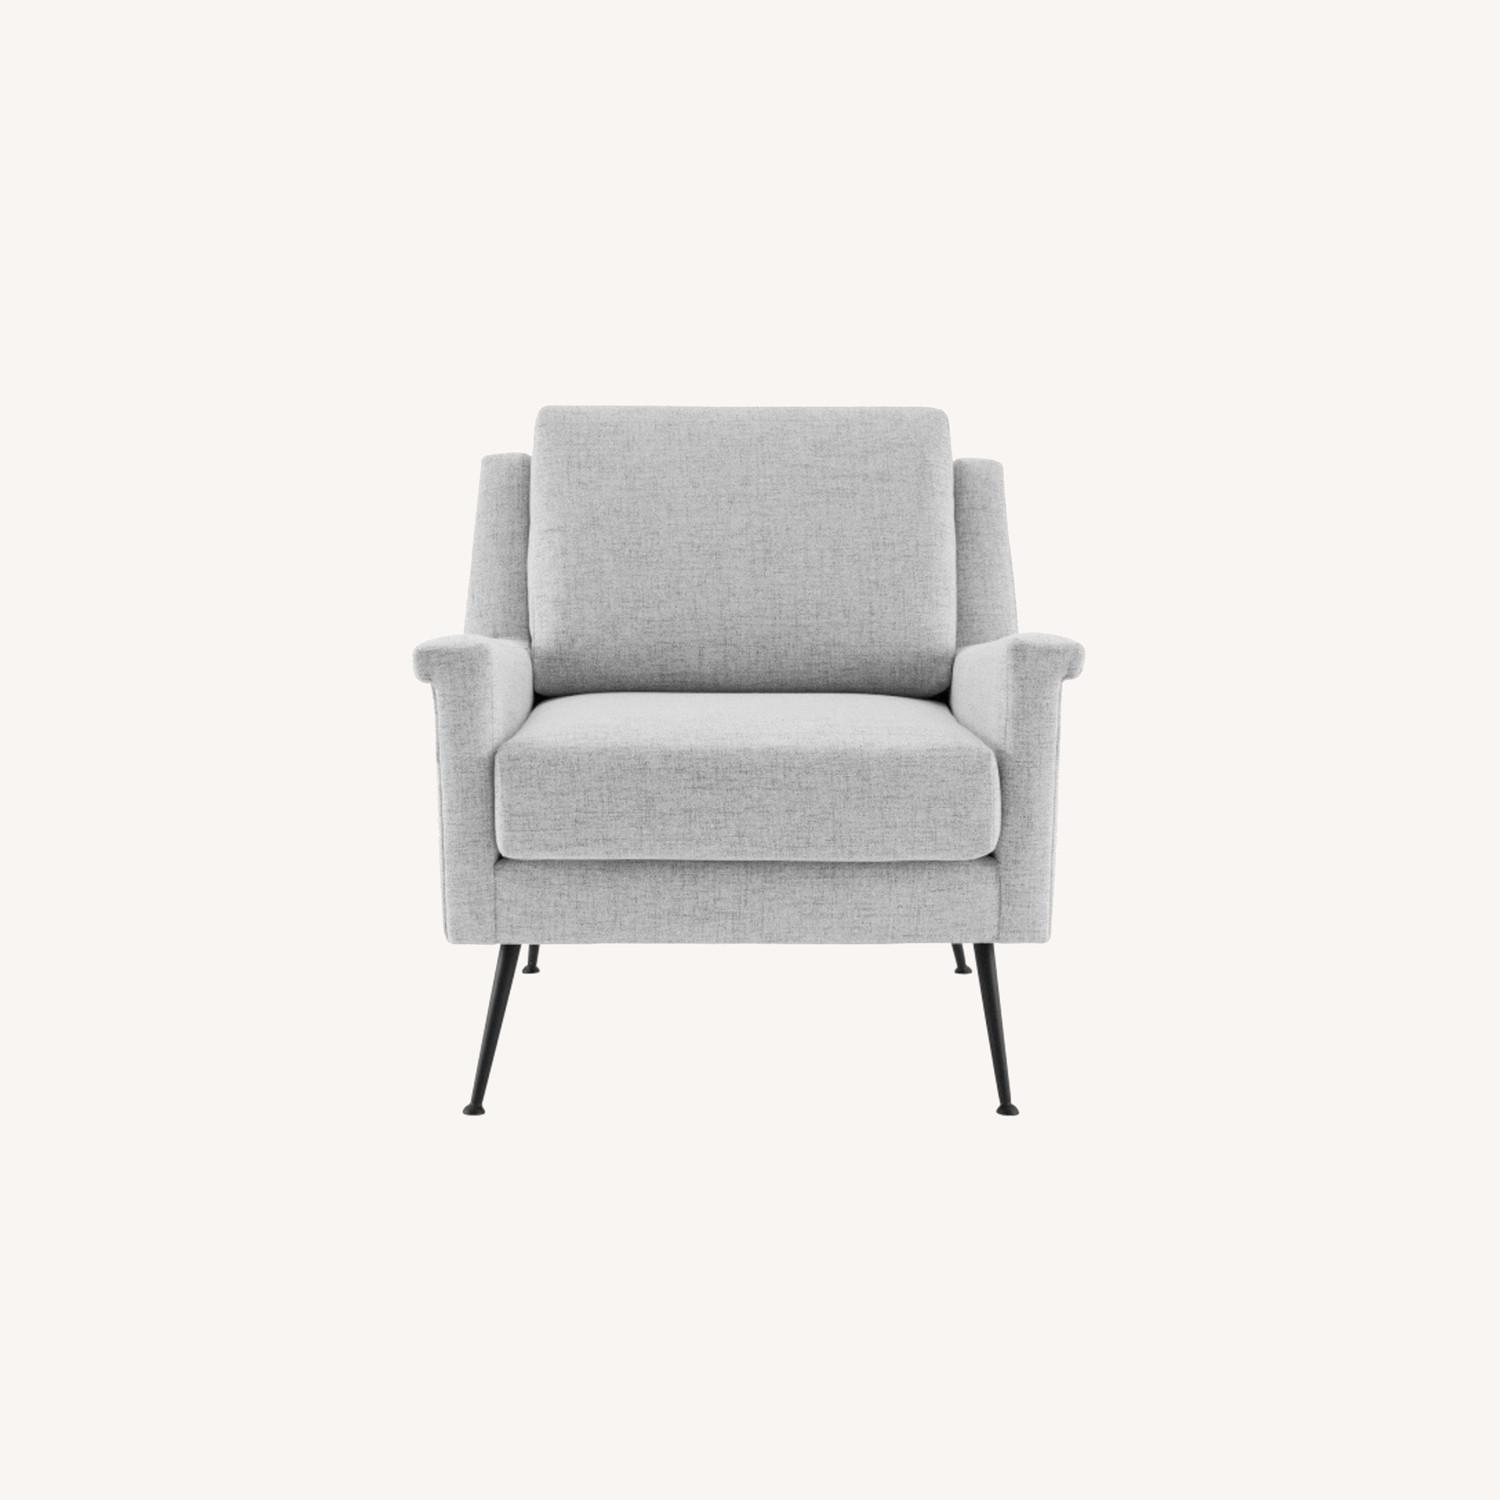 Modern Accent Armchair In Light Gray Fabric - image-8